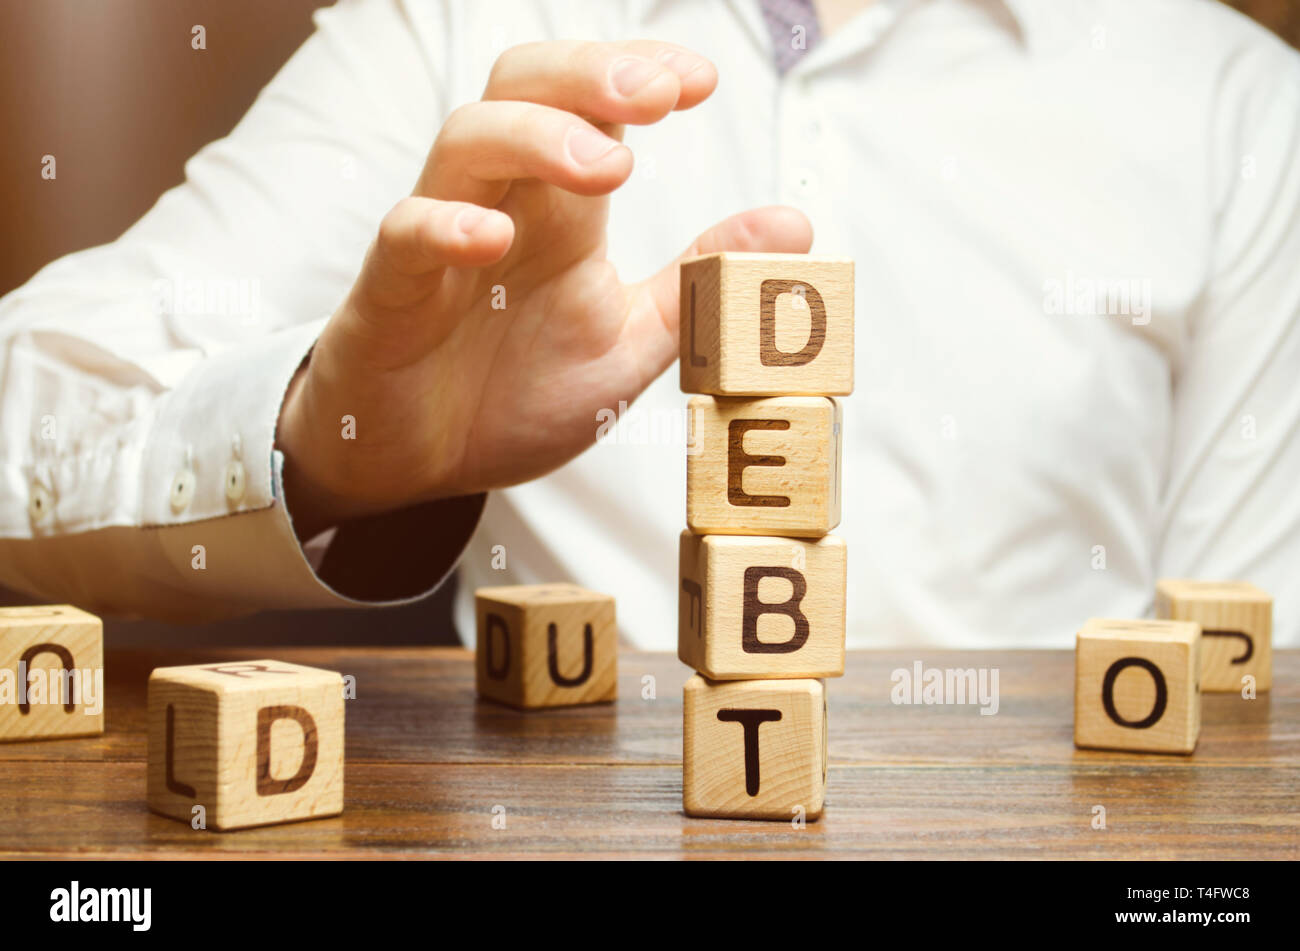 Businessman removes wooden blocks with the word Debt. Reduction or restructuring of debt. Bankruptcy announcement. Refusal to pay debts or loans and i - Stock Image